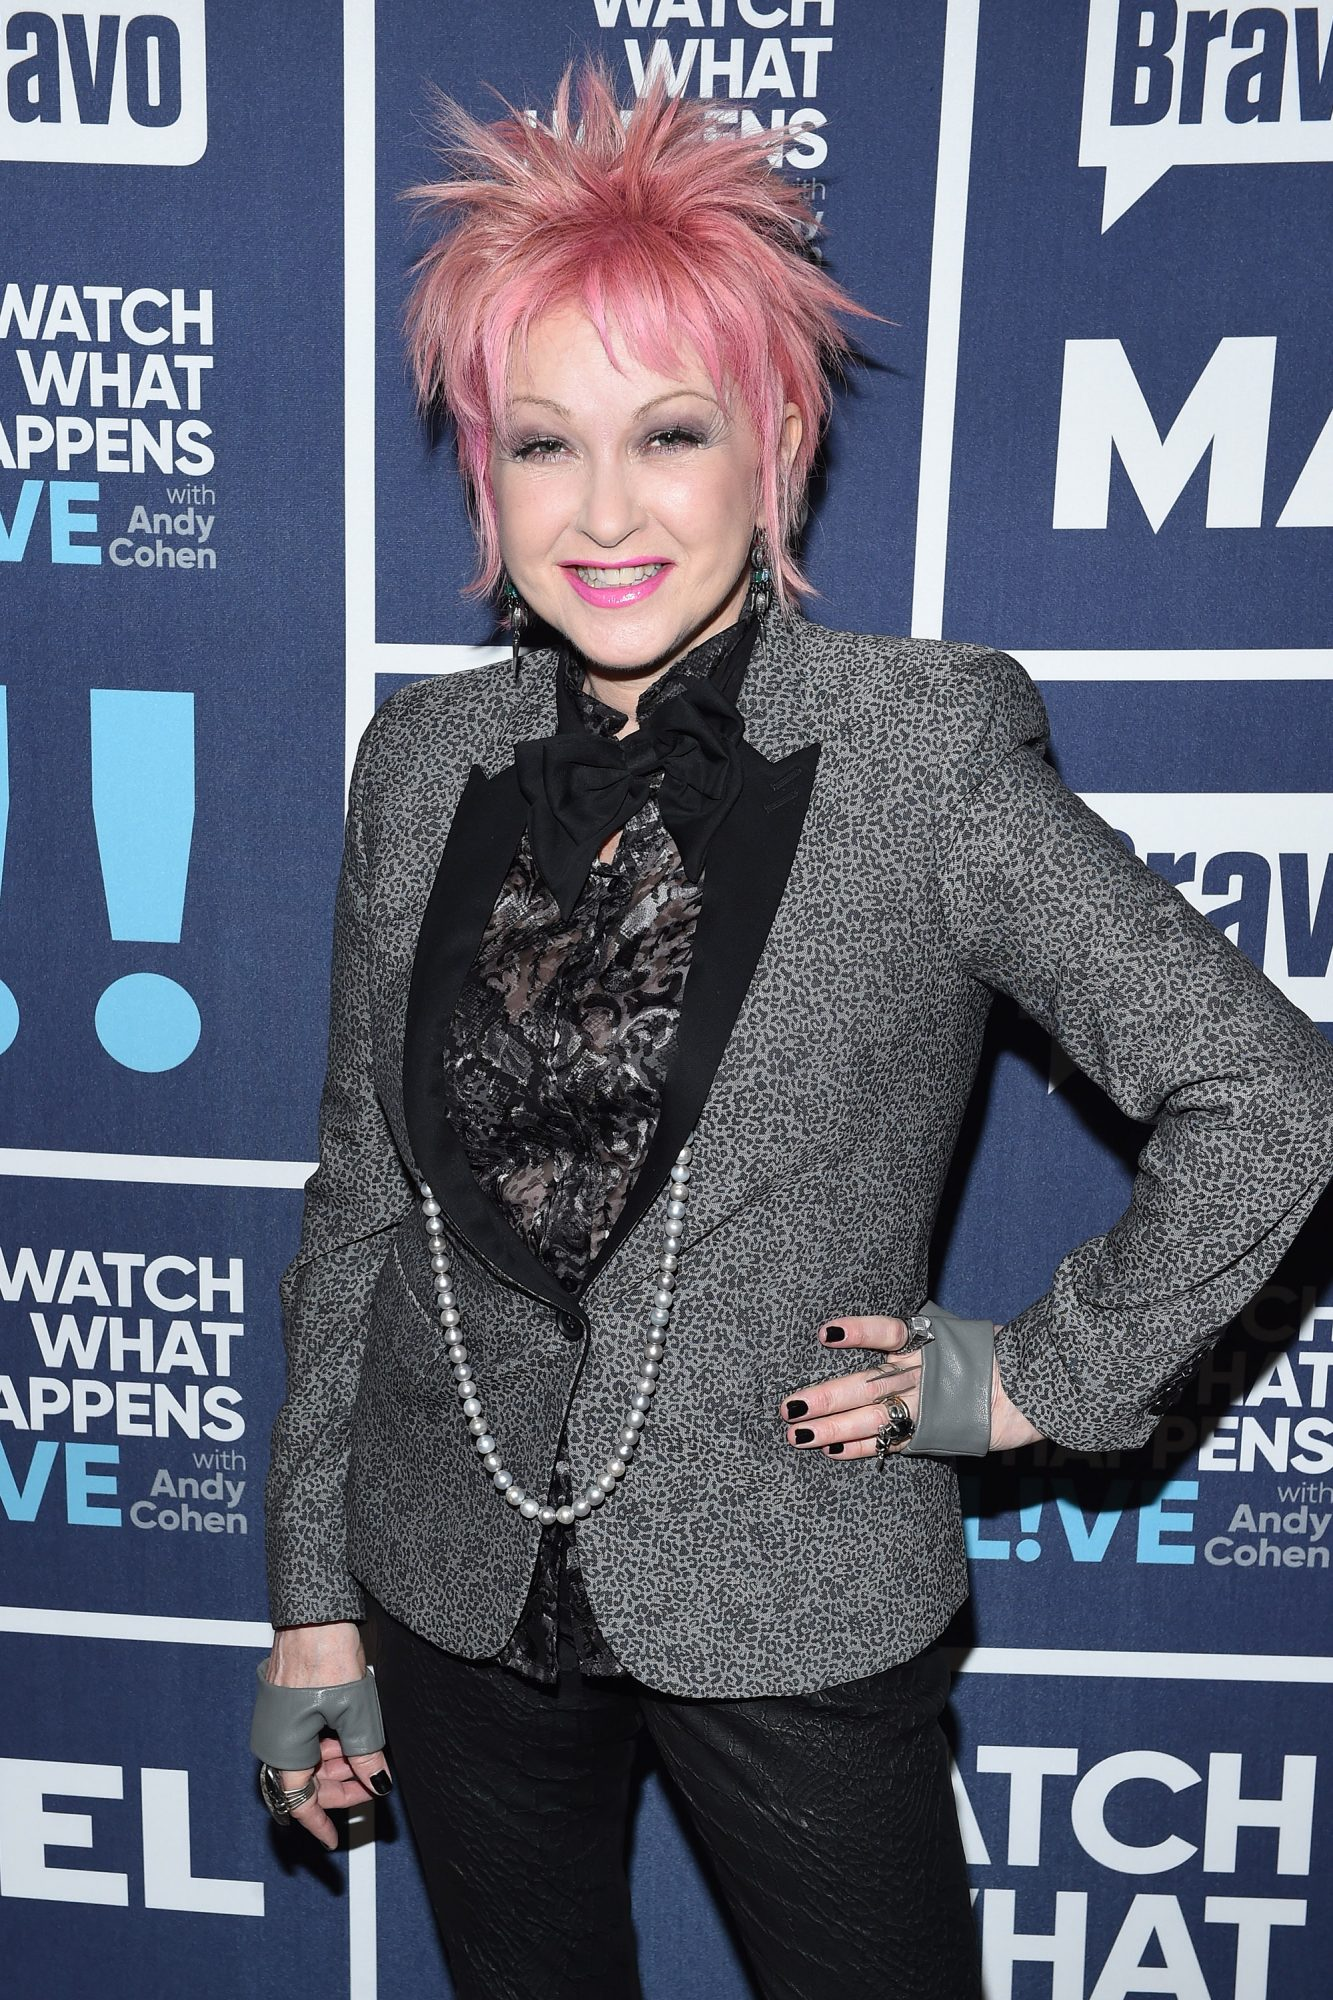 Cyndi Lauper on Her Psoriasis Diagnosis:  At the Height of Being That Sick You Feel Very Much Alone